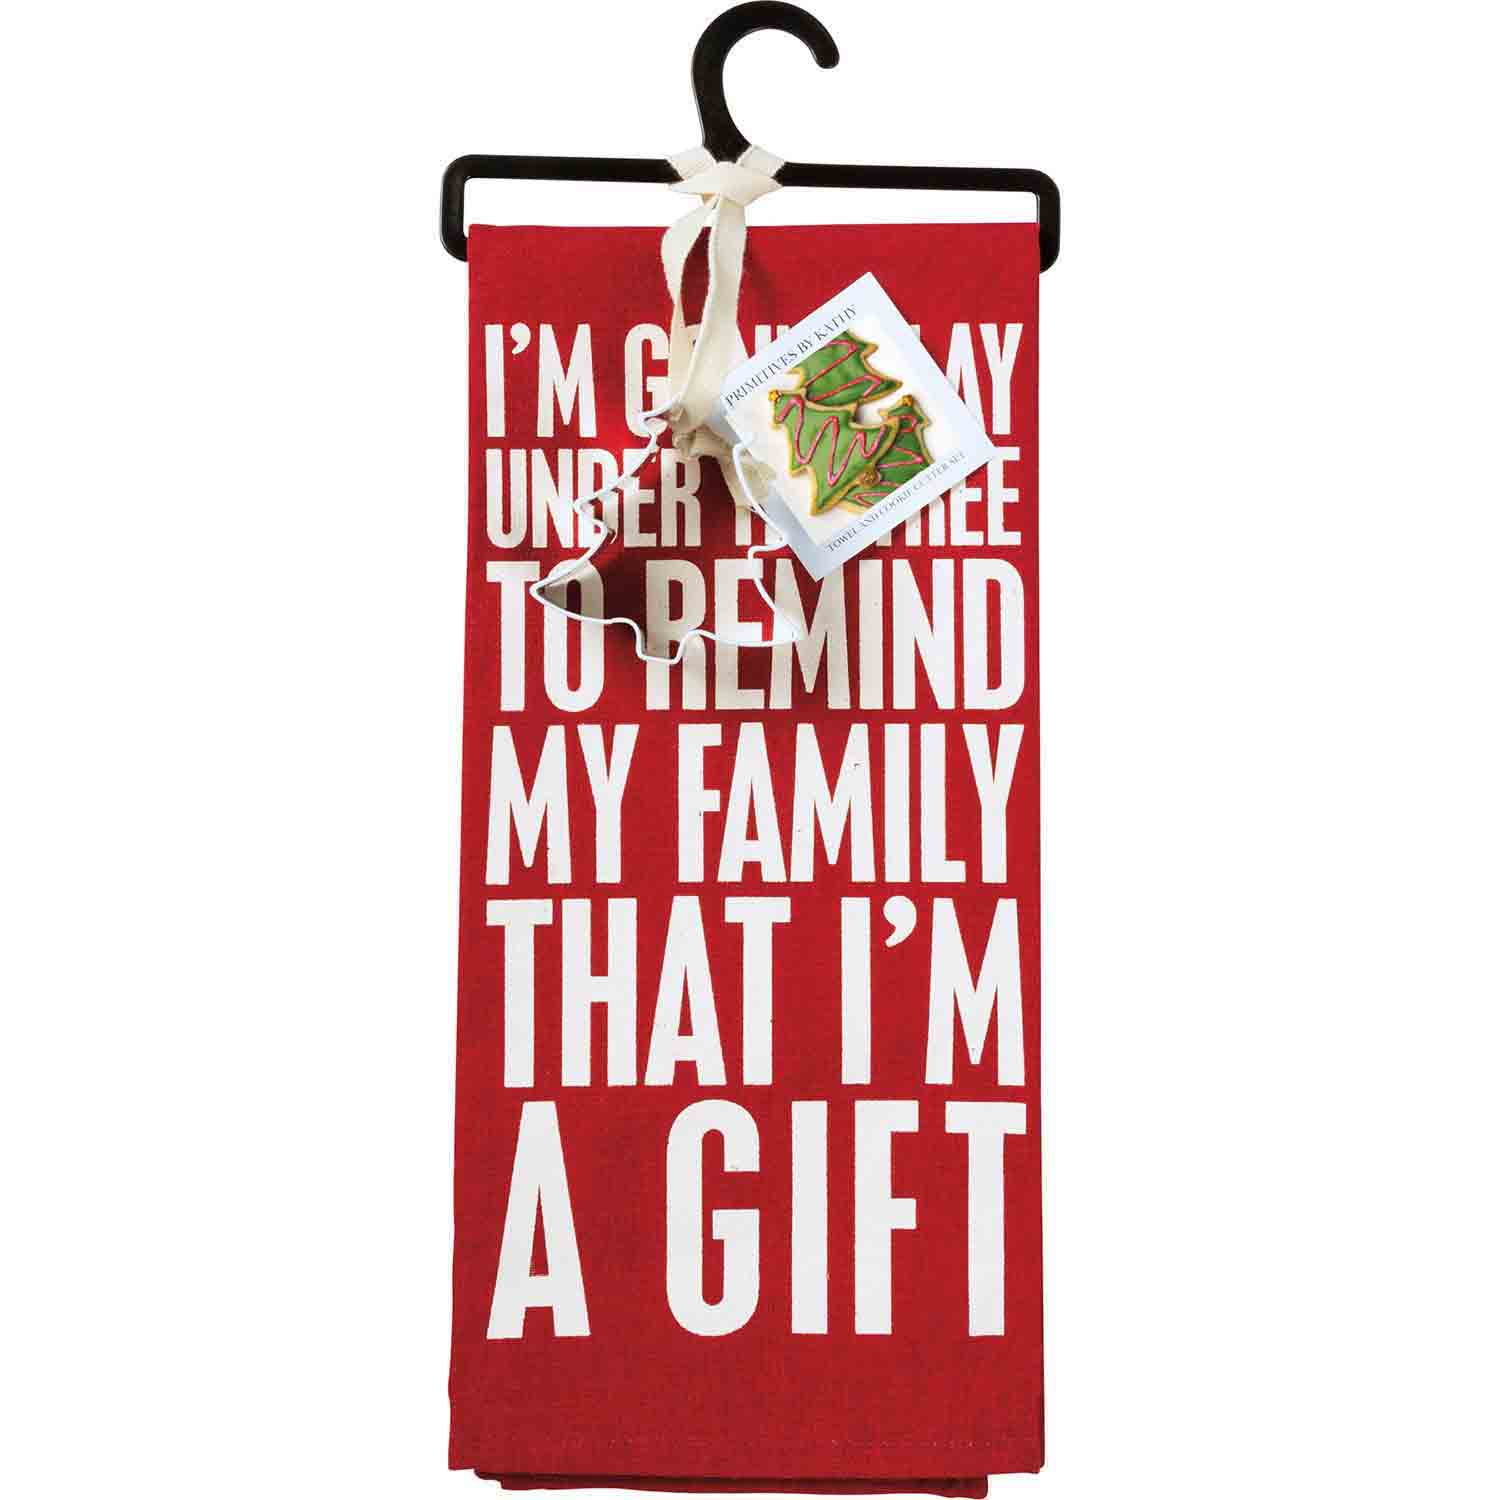 I'm A Gift Towel & Cutter Set